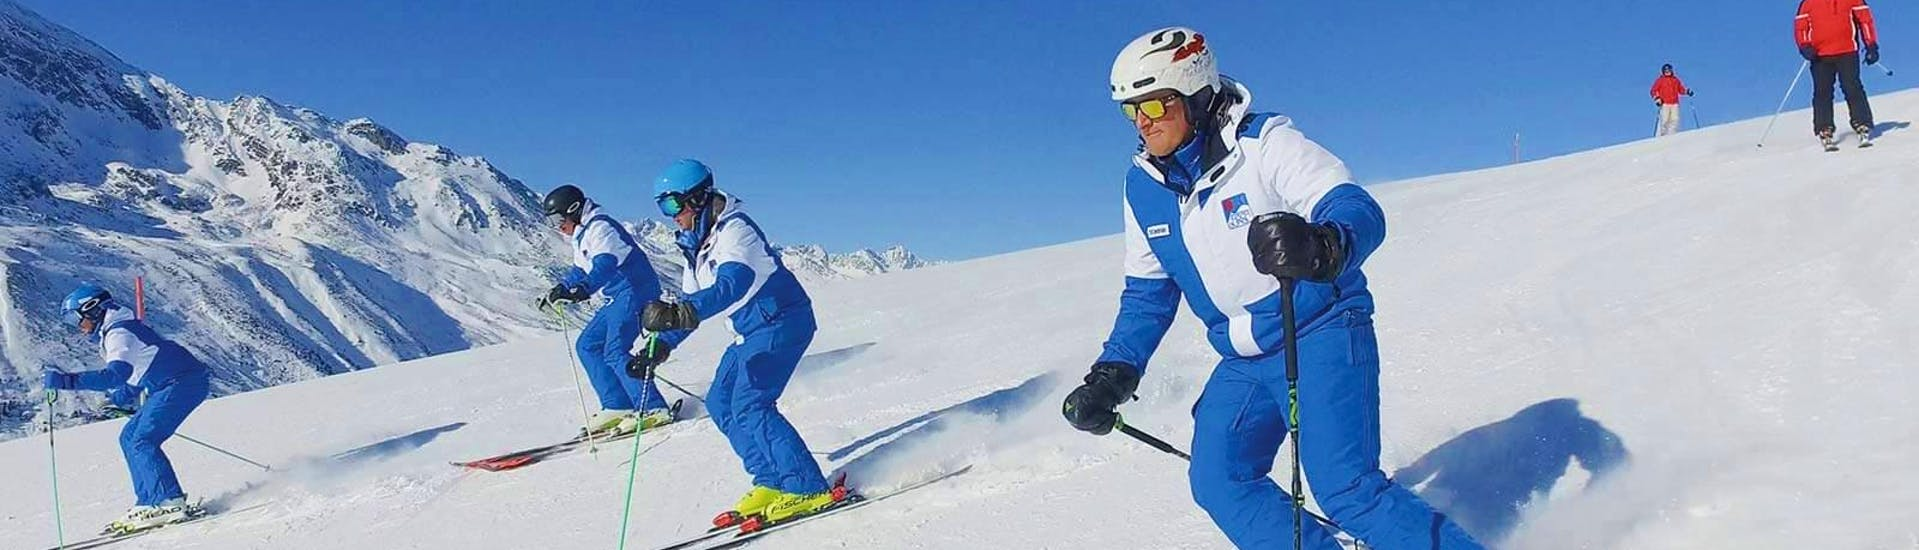 The ski instructors of Schischule Hochgurgl are enjoying the slopes of the Obergurgl-Hochgurgl ski resort where they offer ski and snowboarding lessons to their guests.